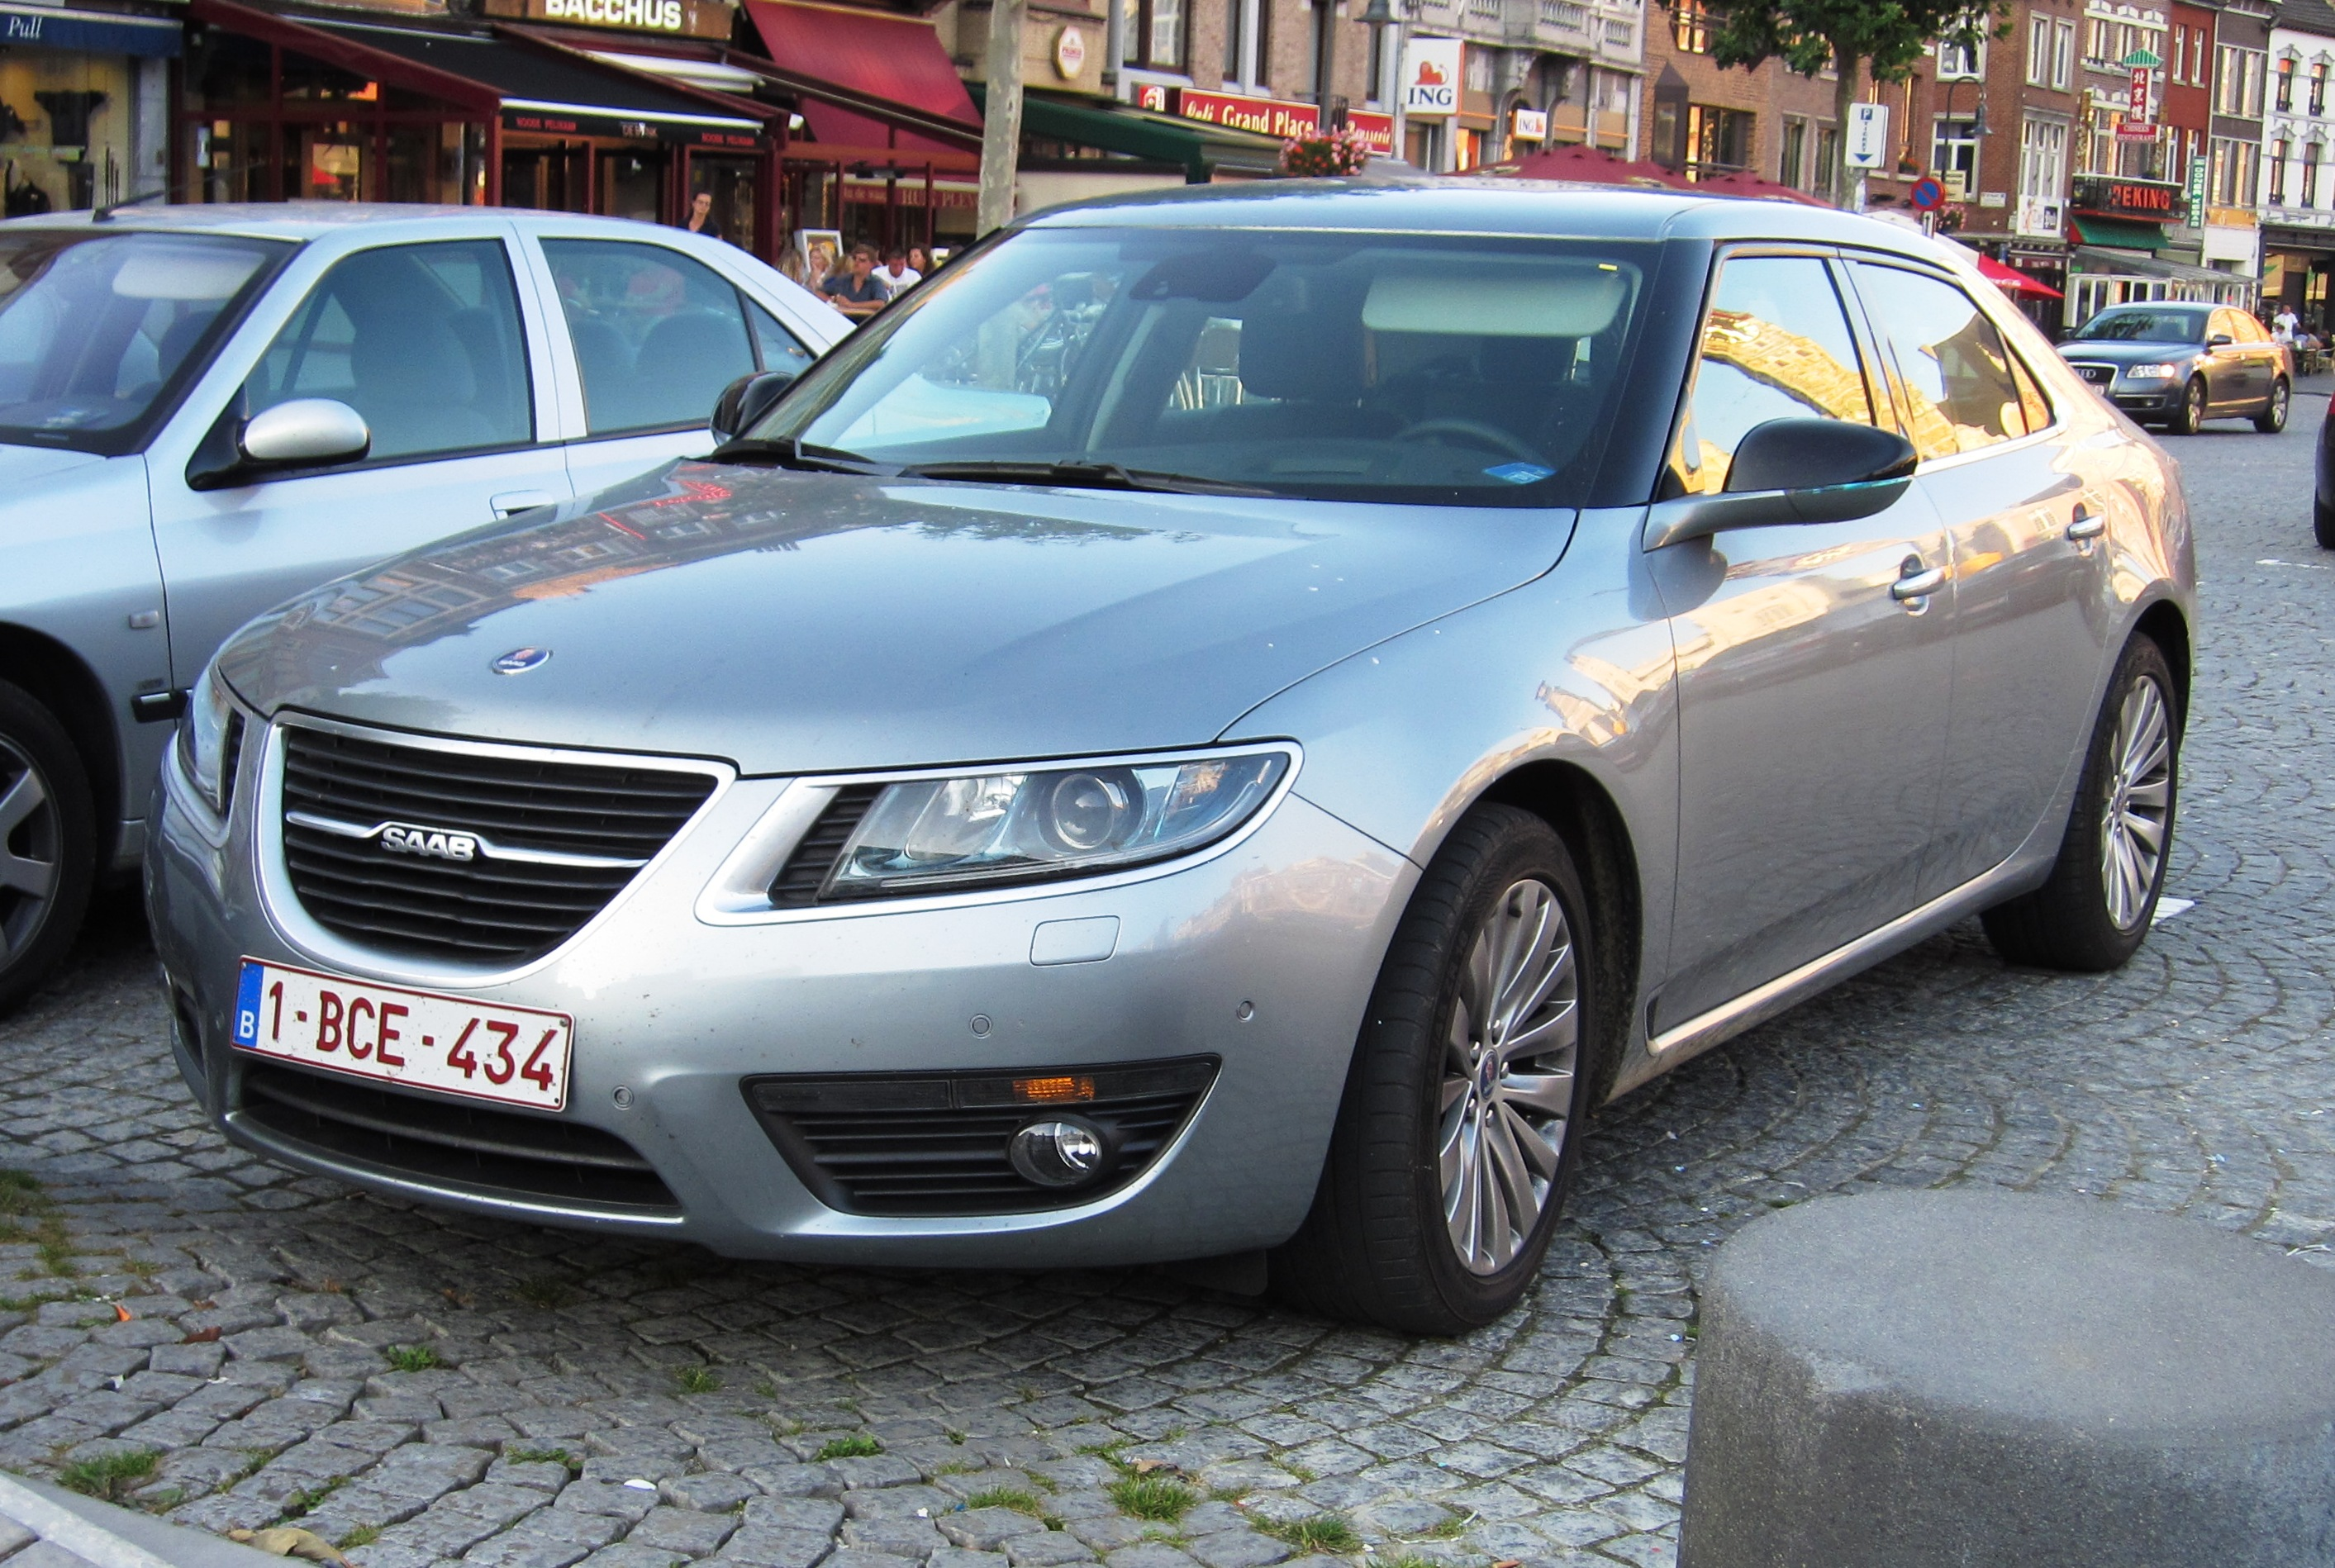 file saab 9 5 2011 in st wikimedia commons. Black Bedroom Furniture Sets. Home Design Ideas